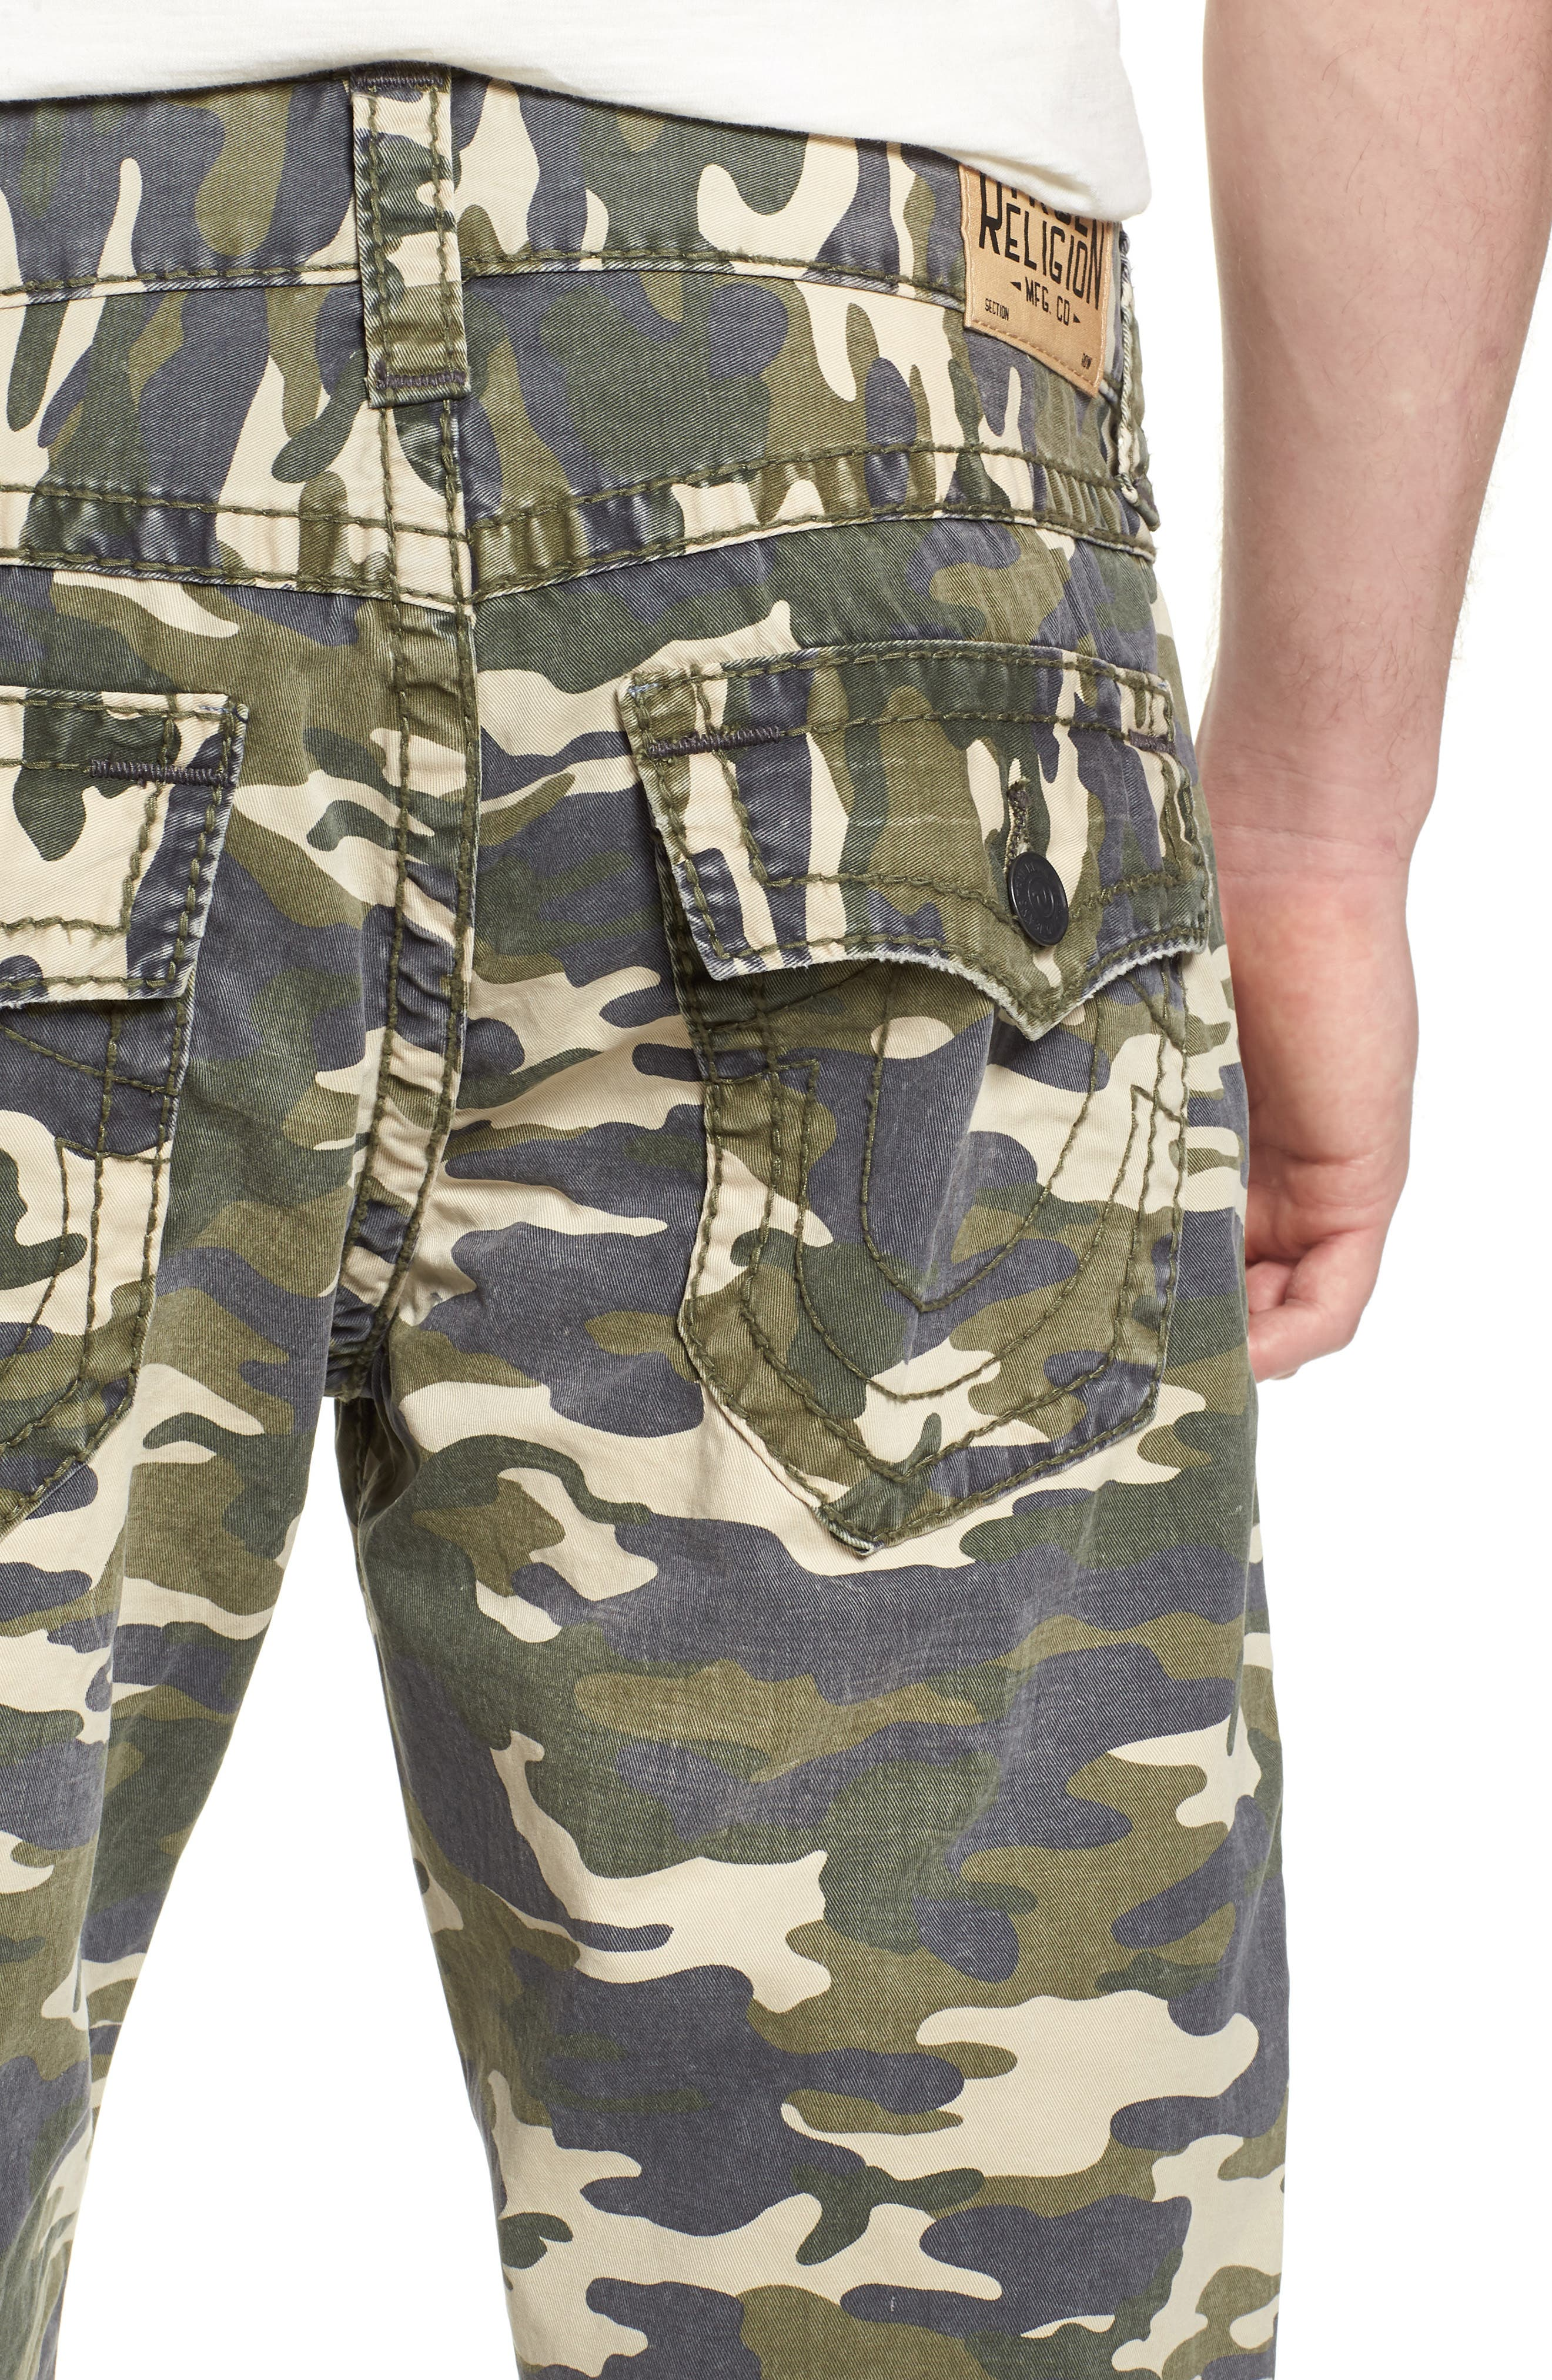 Ricky Relaxed Fit Shorts,                             Alternate thumbnail 4, color,                             TERRITORY